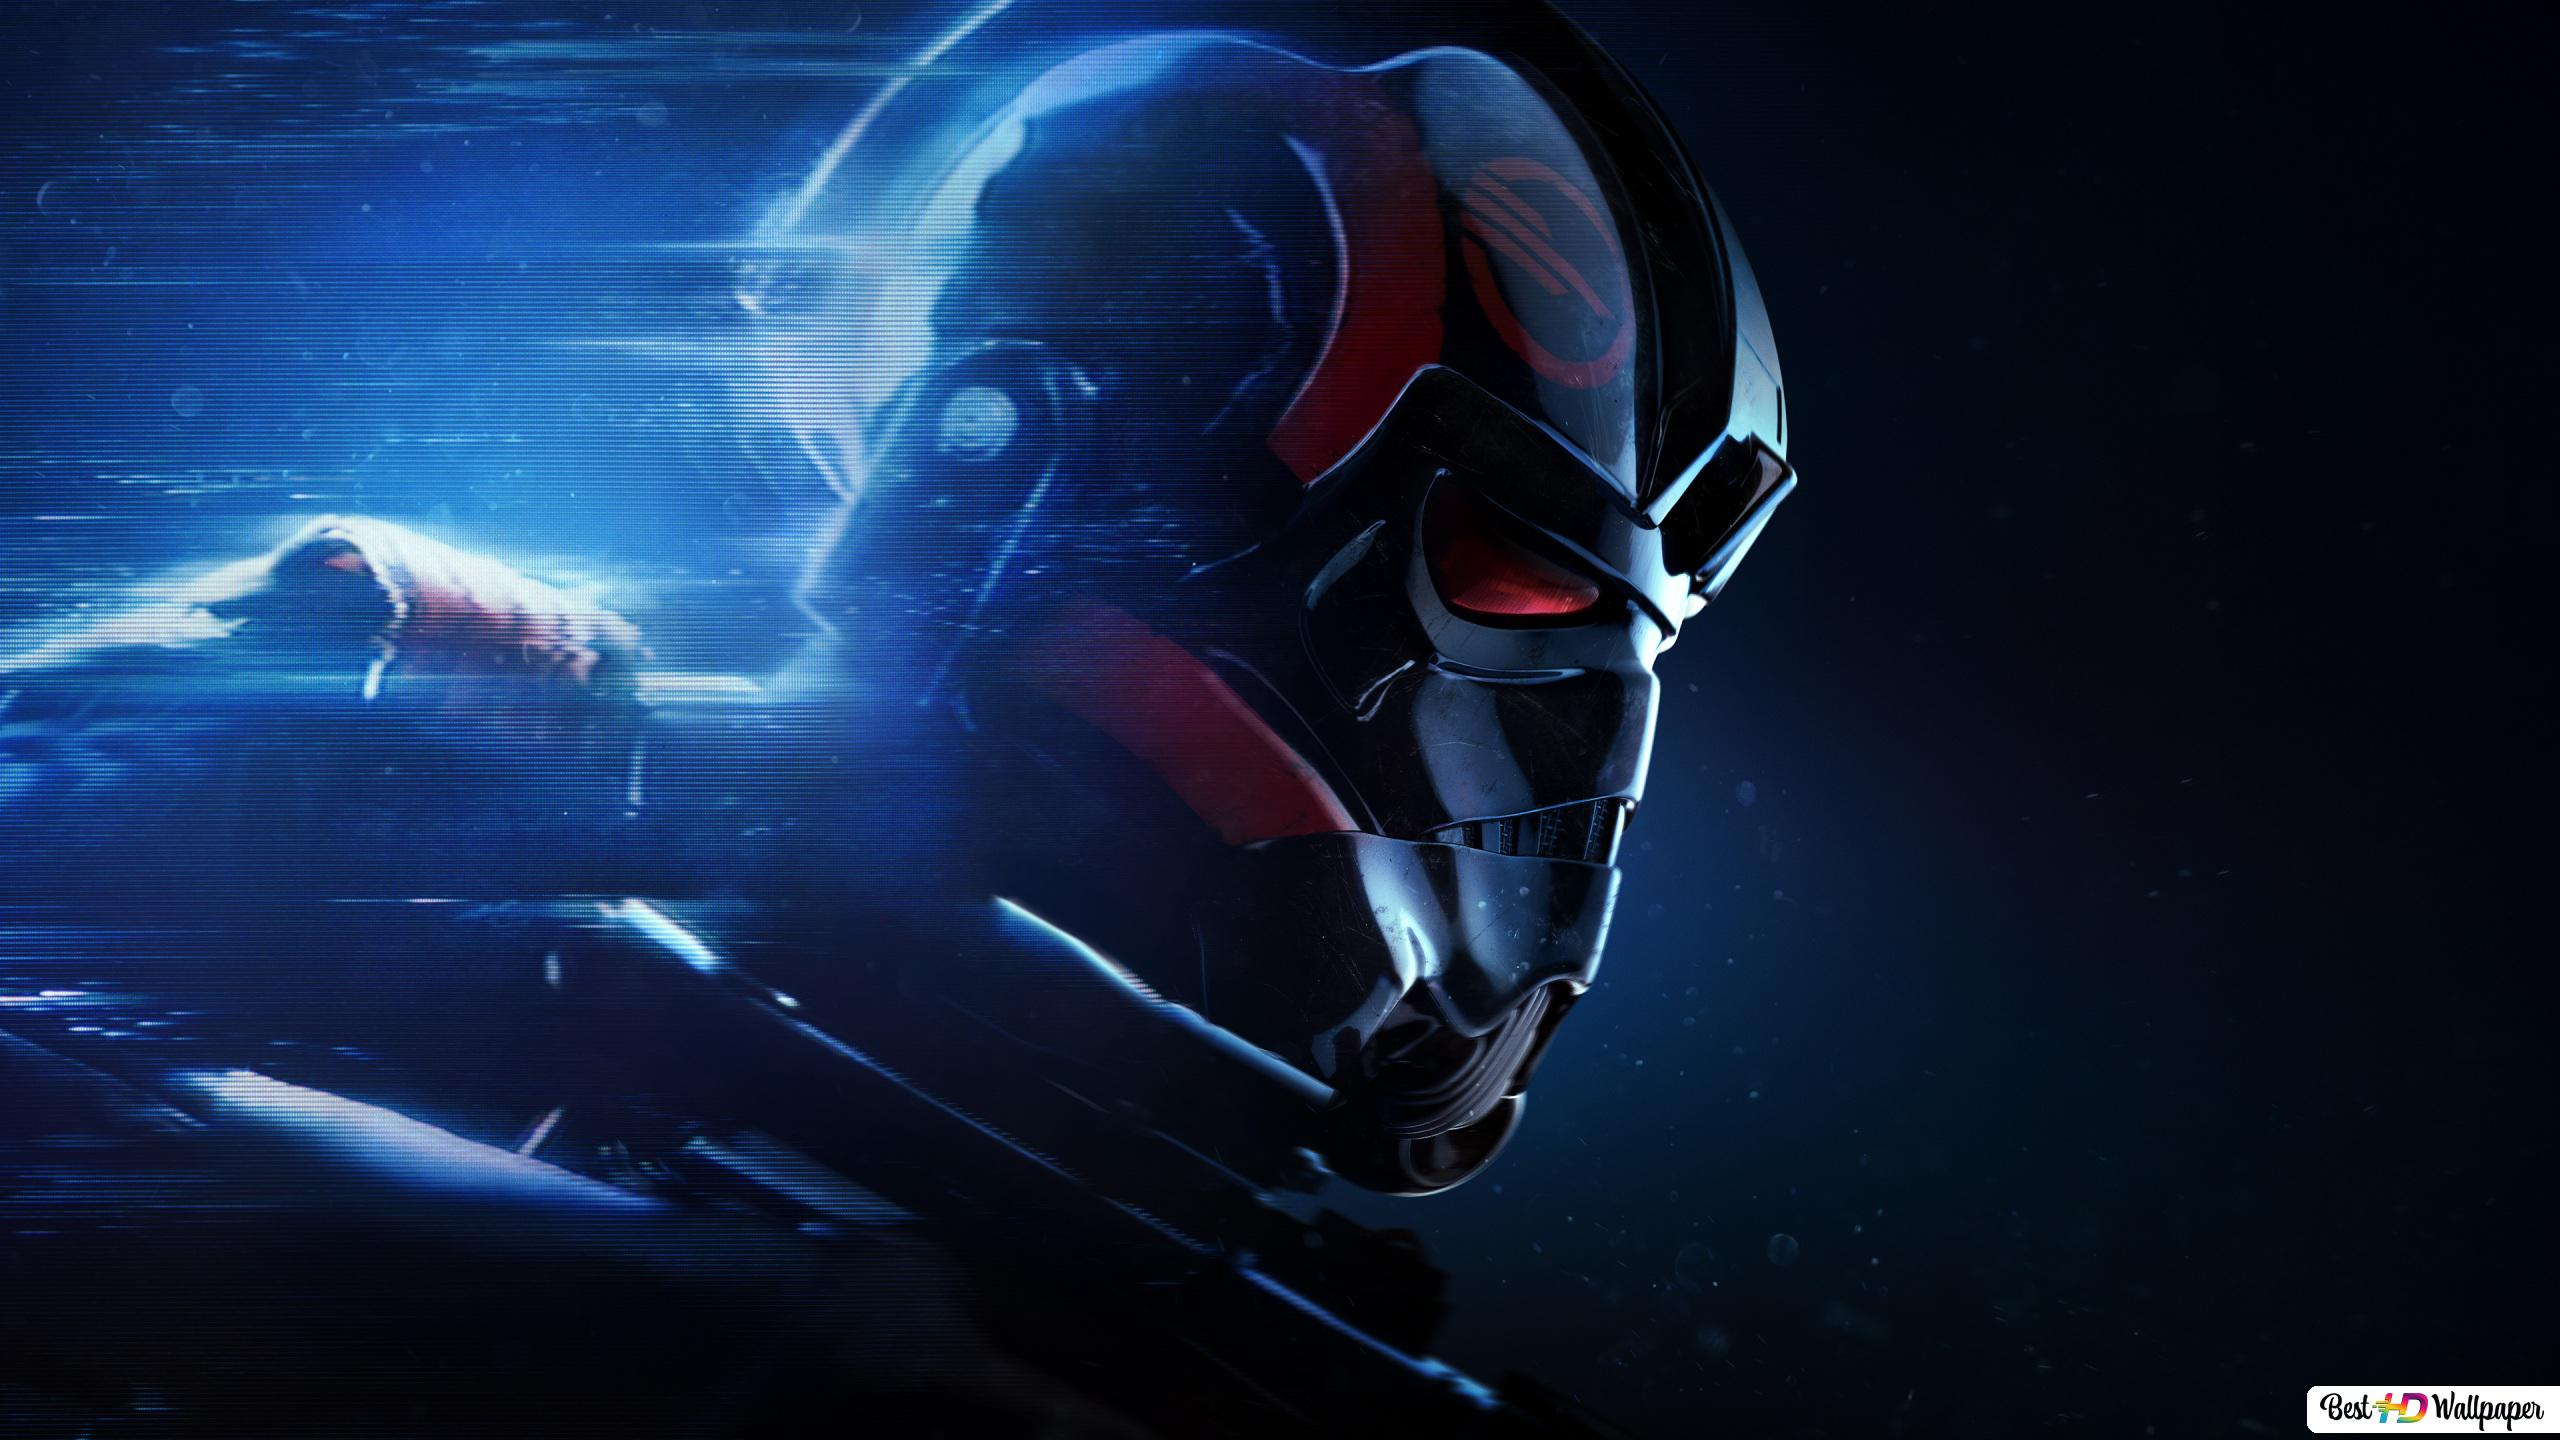 Star Wars Battlefront 2 Game Black Trooper Hd Wallpaper Download